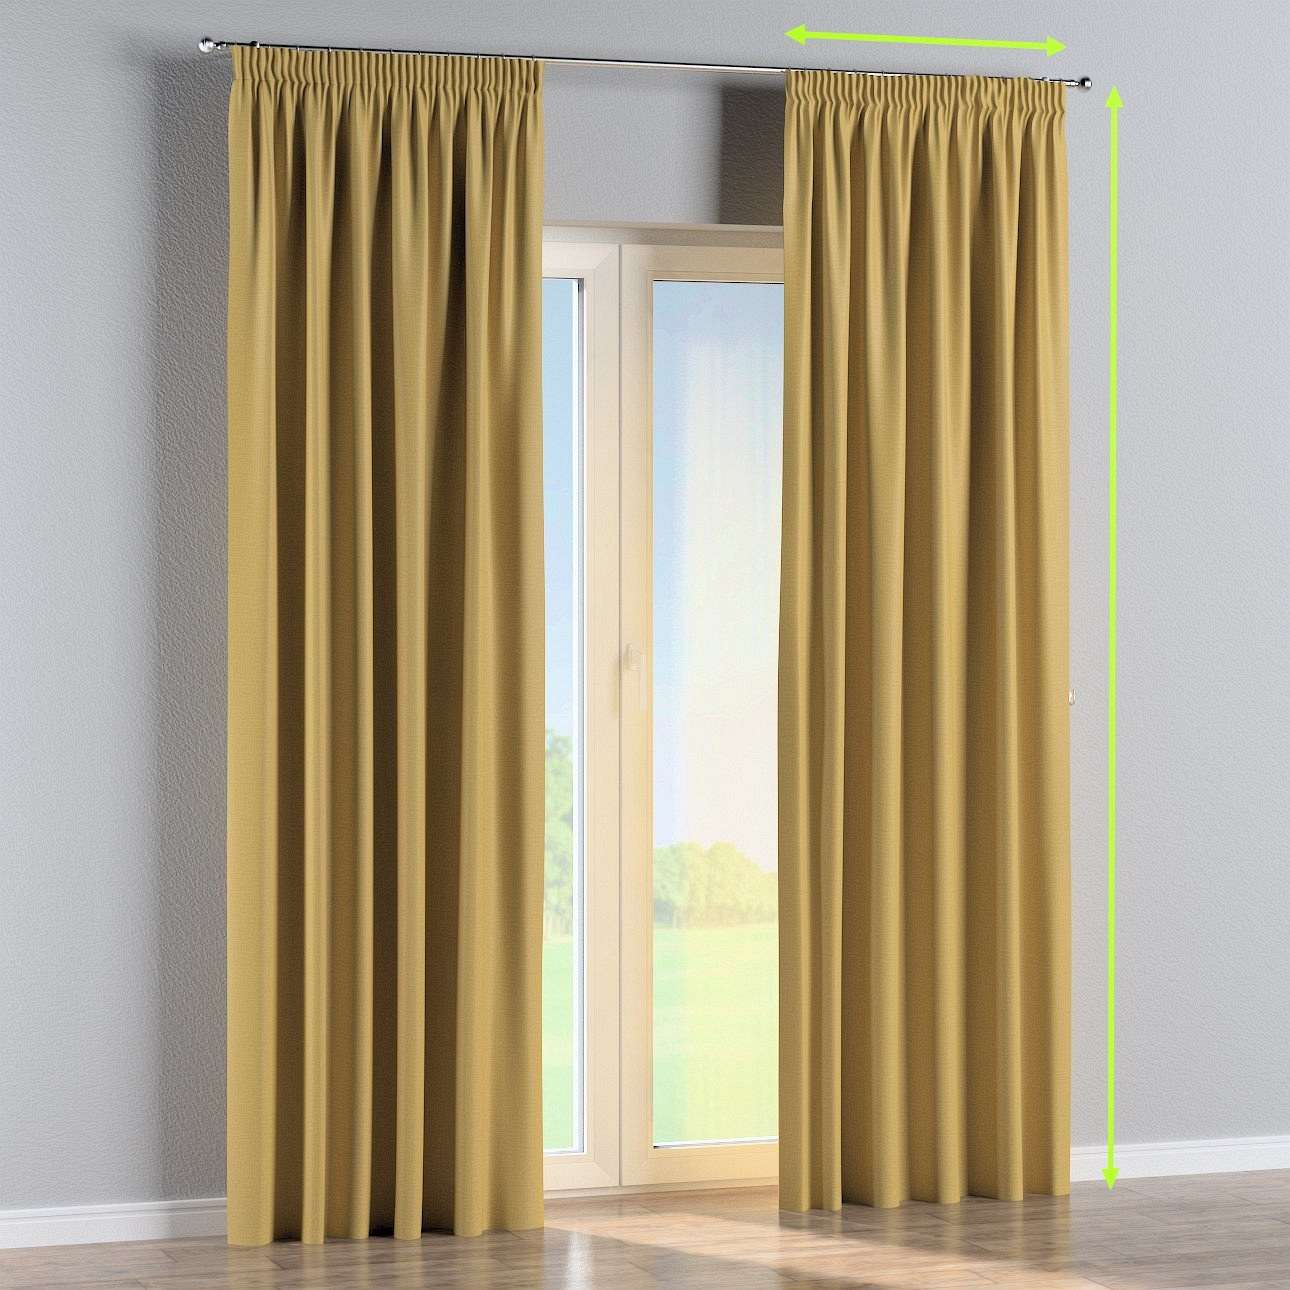 Pencil pleat curtains in collection Blackout, fabric: 269-68